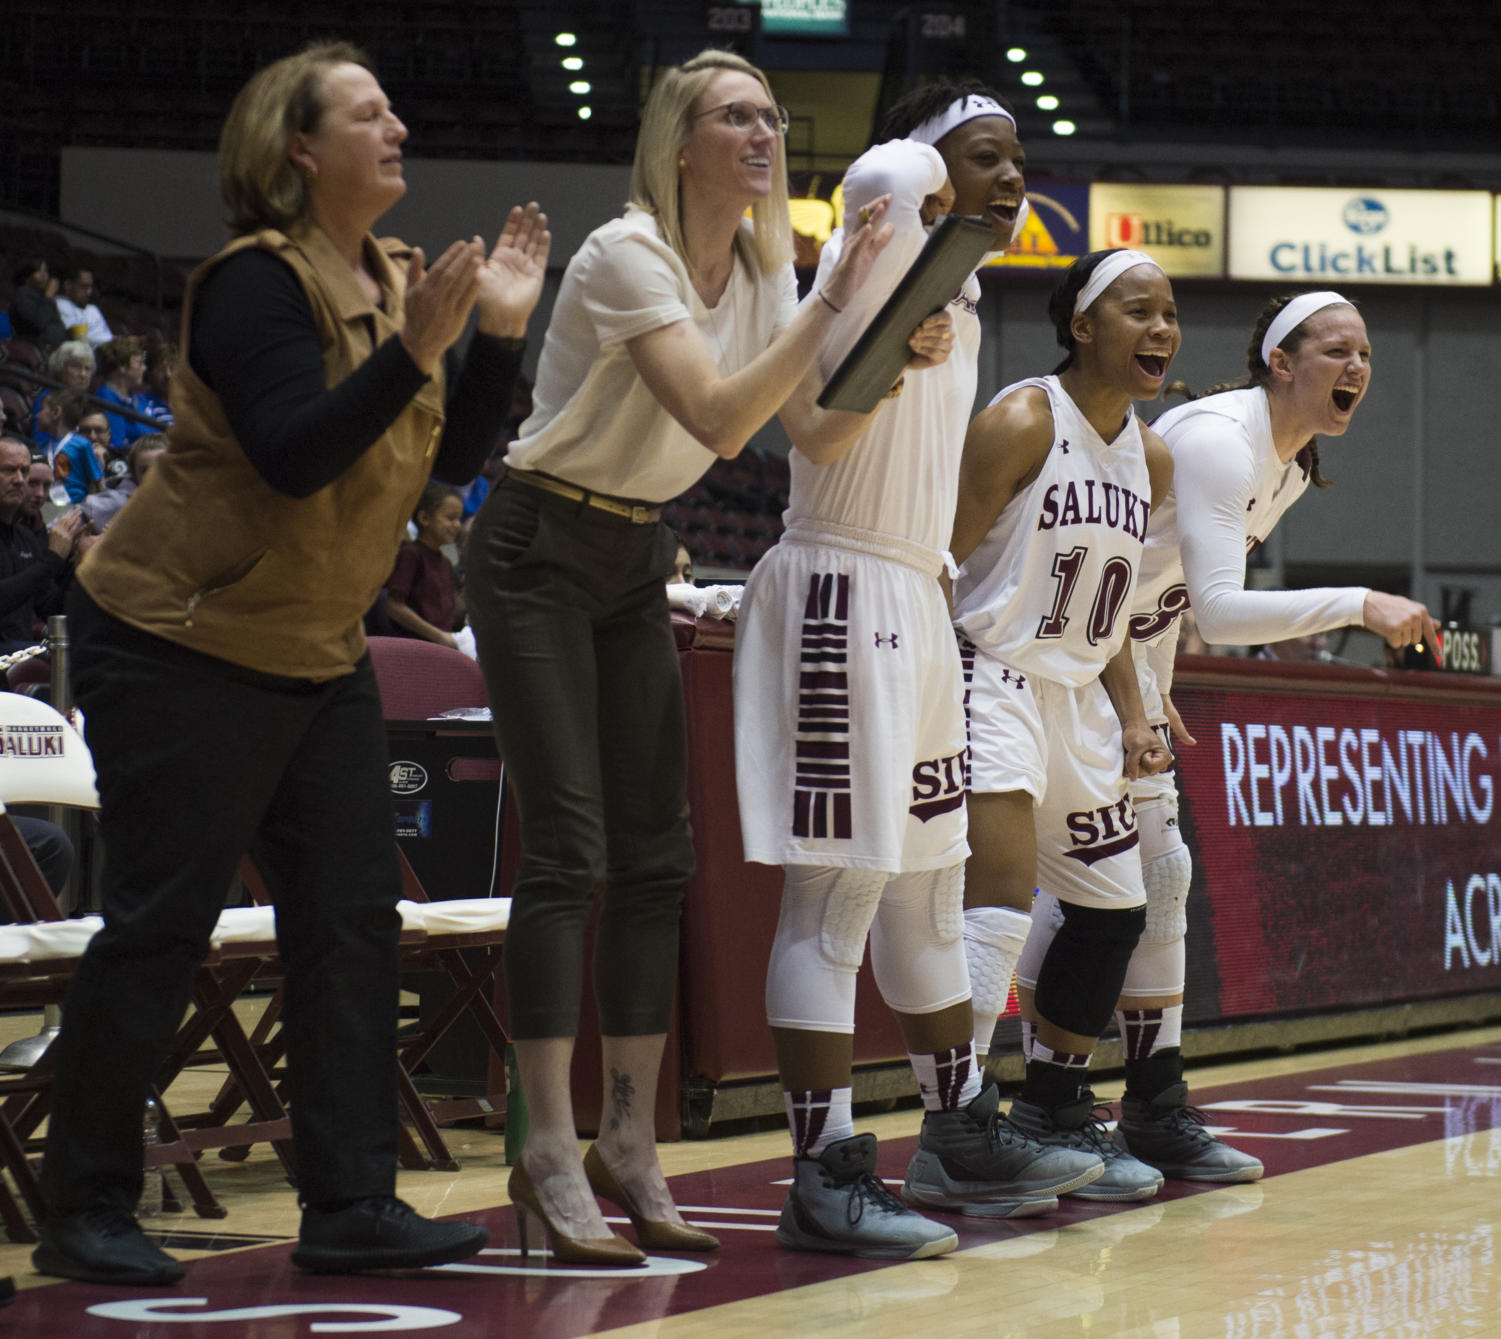 Members of the Saluki women's basketball team celebrate after a basket Thursday, March 1, 2018, during the Salukis' 54-43 victory against the Sycamore at SIU Arena. (Dylan Nelson | @Dylan_Nelson99)